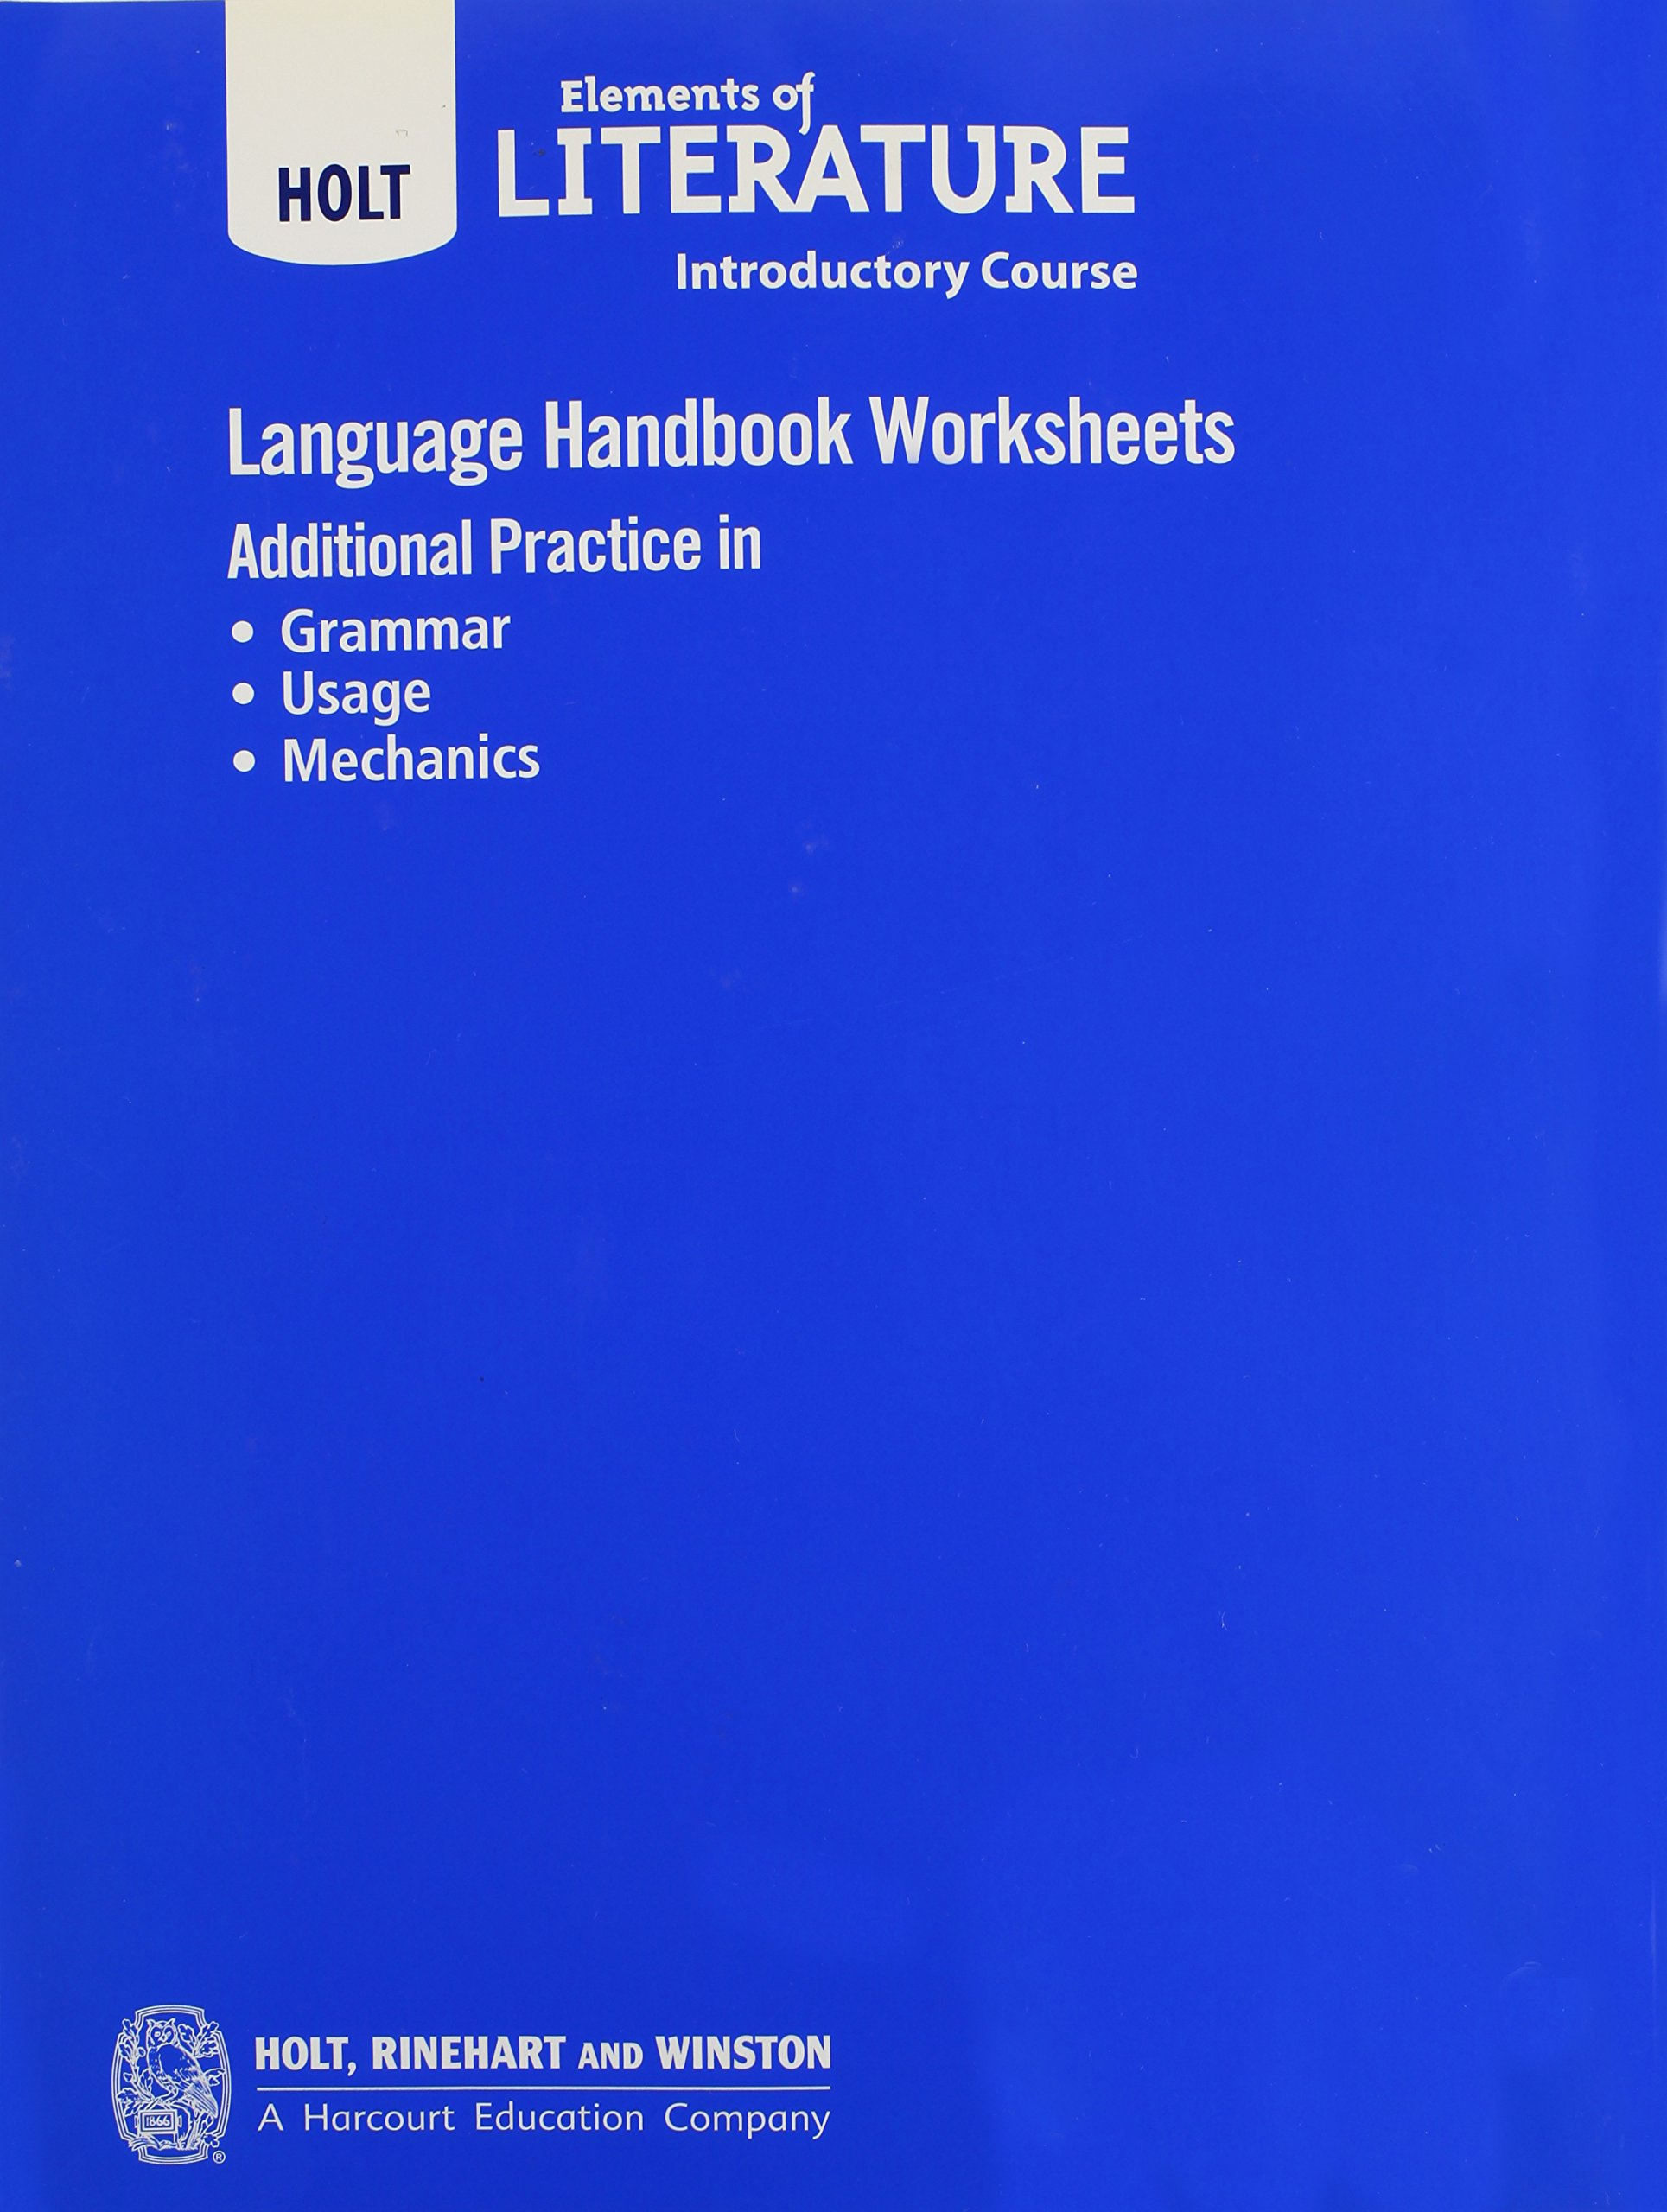 Language Handbook Worksheets Isbn 0554008645 Holt Elements Of Literature Introductory Course Amazon Com Books [ 2560 x 1929 Pixel ]